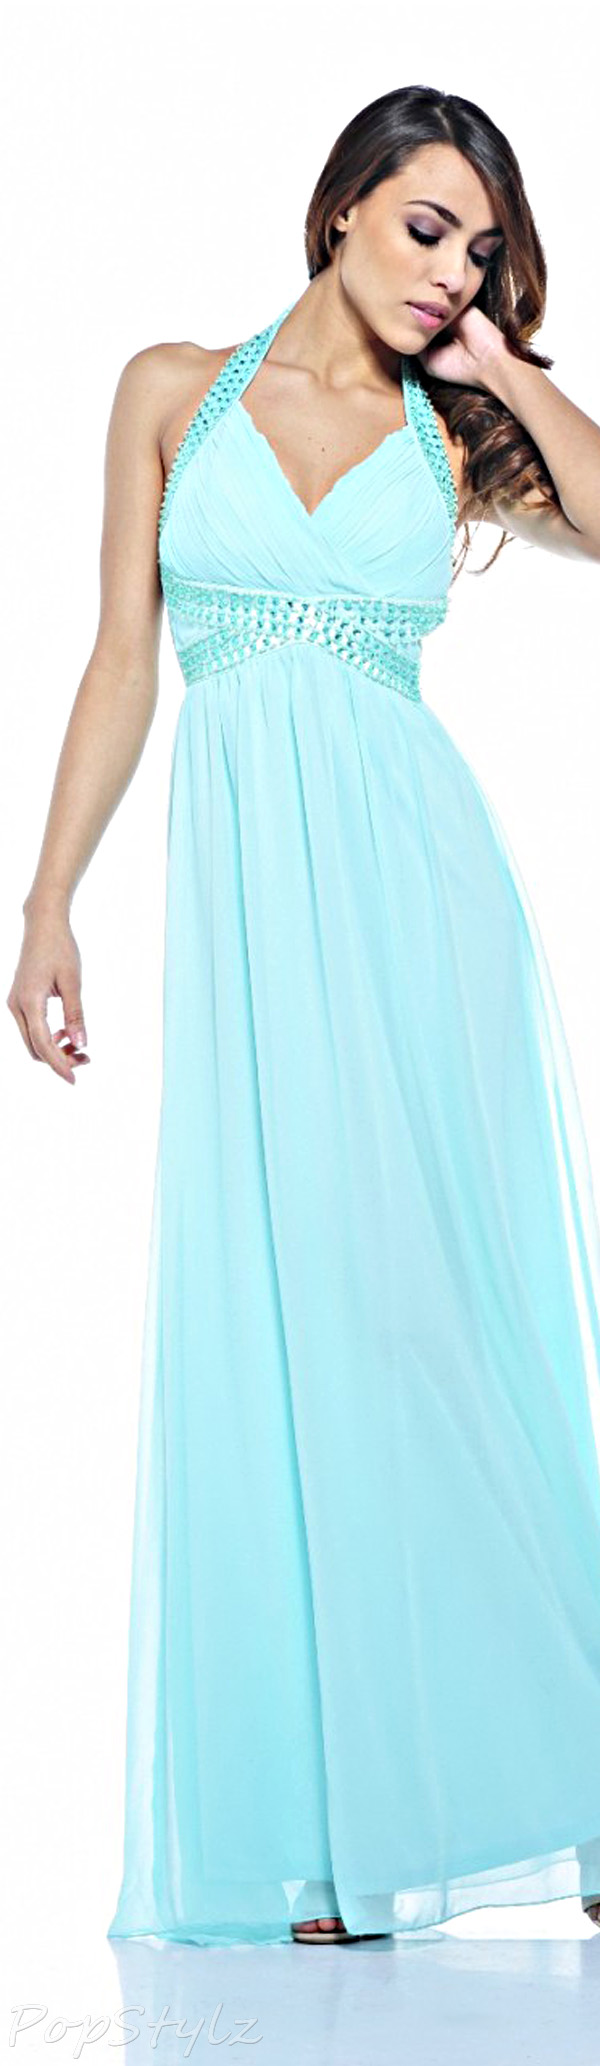 AX Paris Jewel Halter Neck Maxi Dress